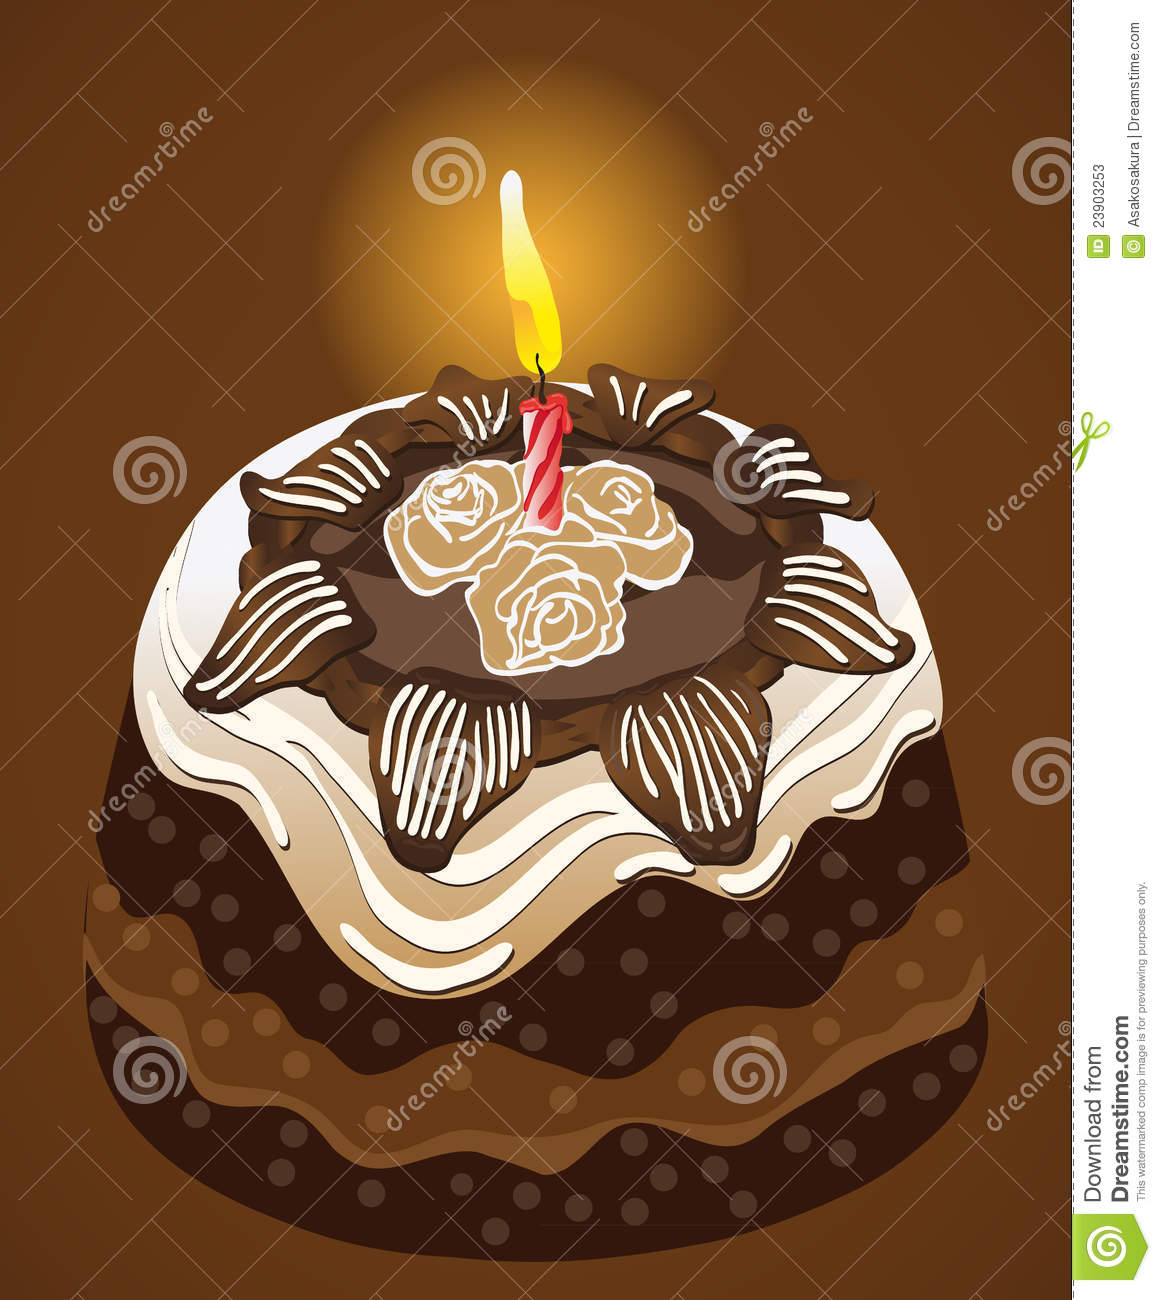 Cake Images In : Birthday Party Chocolate Cake With Candle. Vector Stock ...